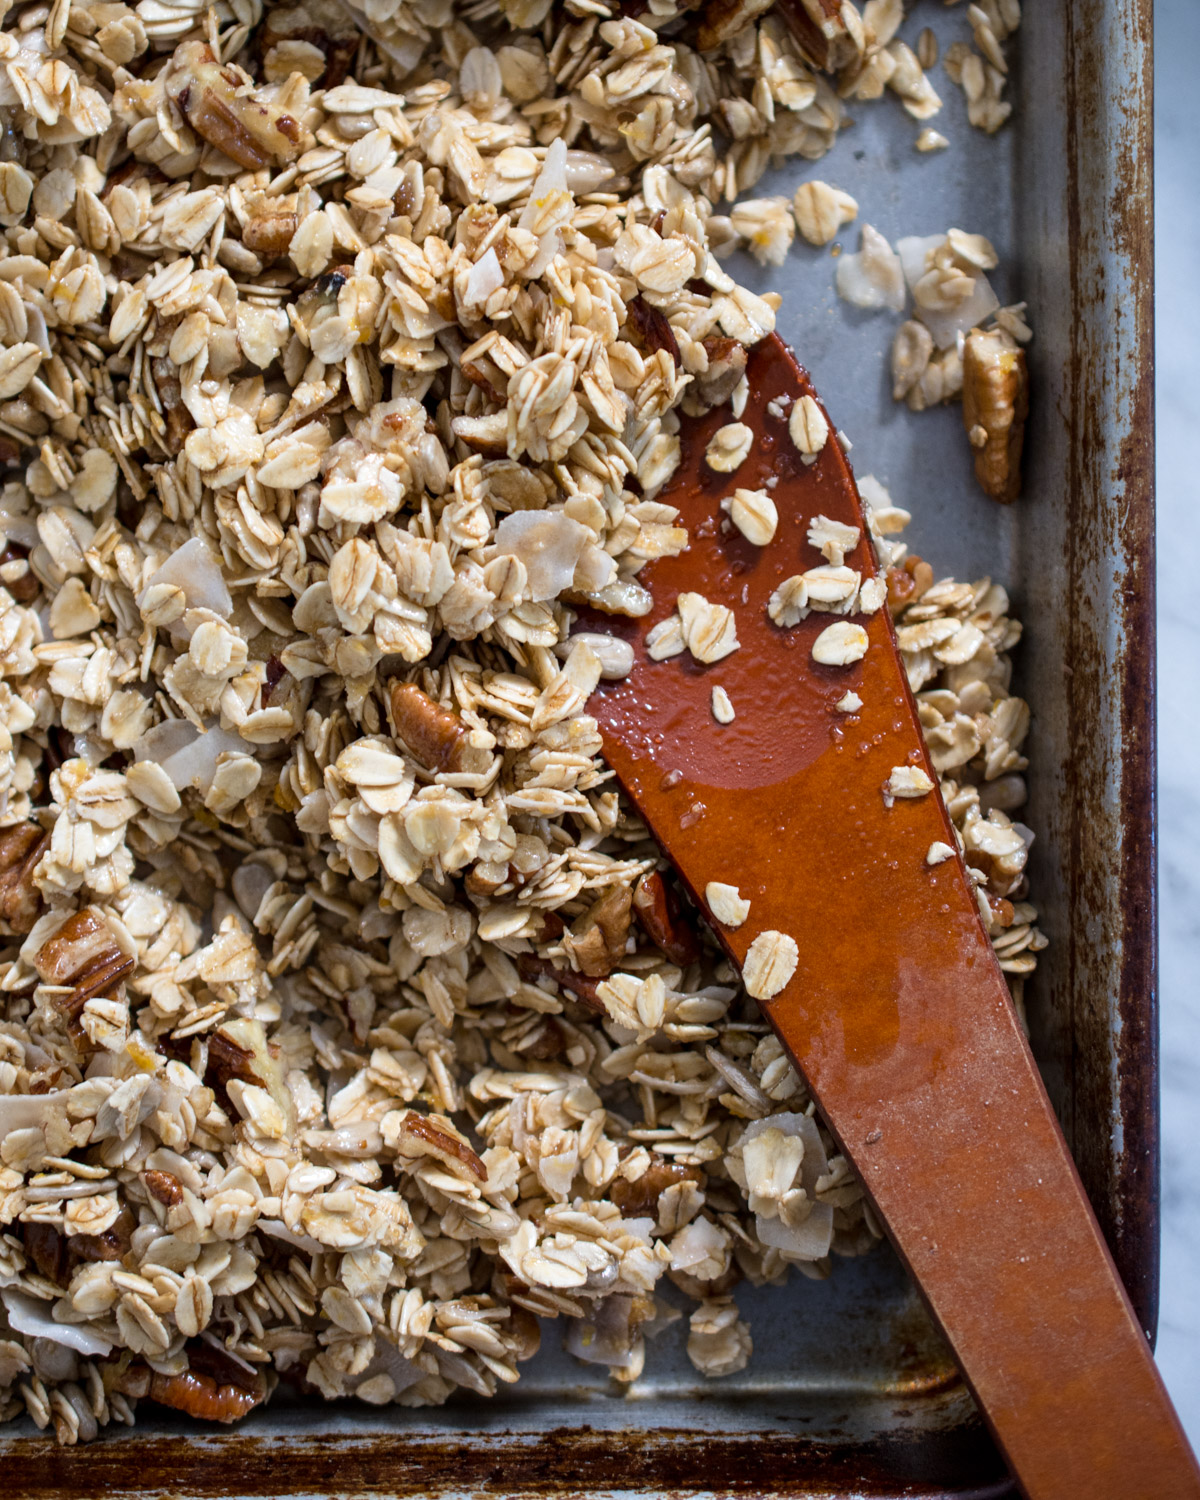 Lemon pecan granola, ready for roasting.